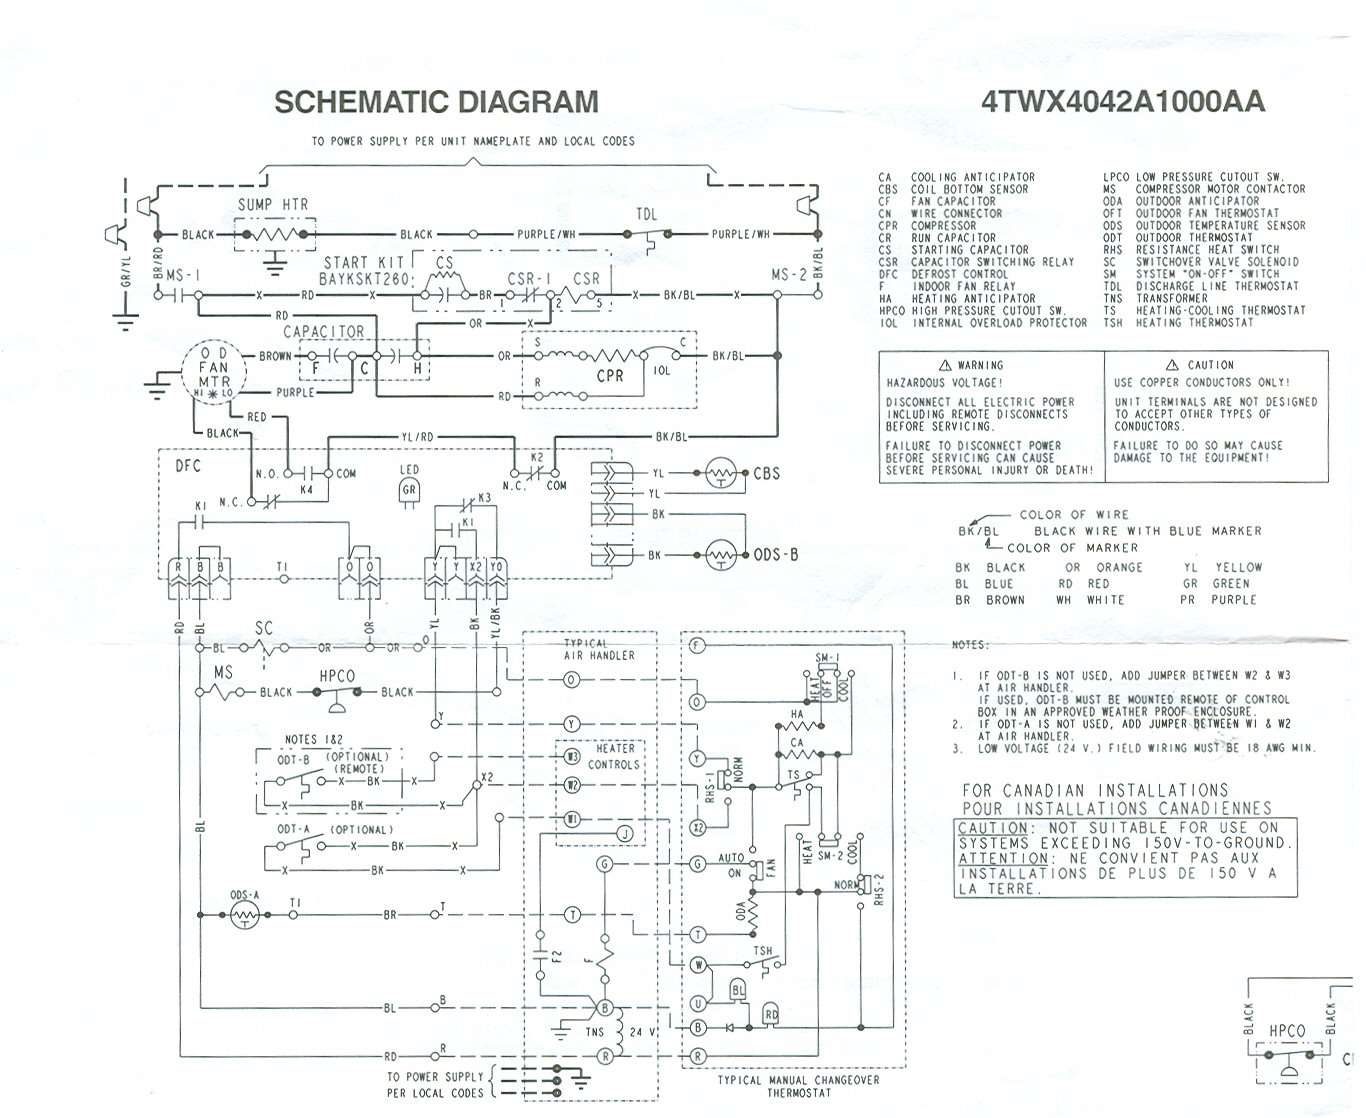 hp correct tstat wiring for xl14, defrost cycle trouble defrost board wiring diagram at highcare.asia